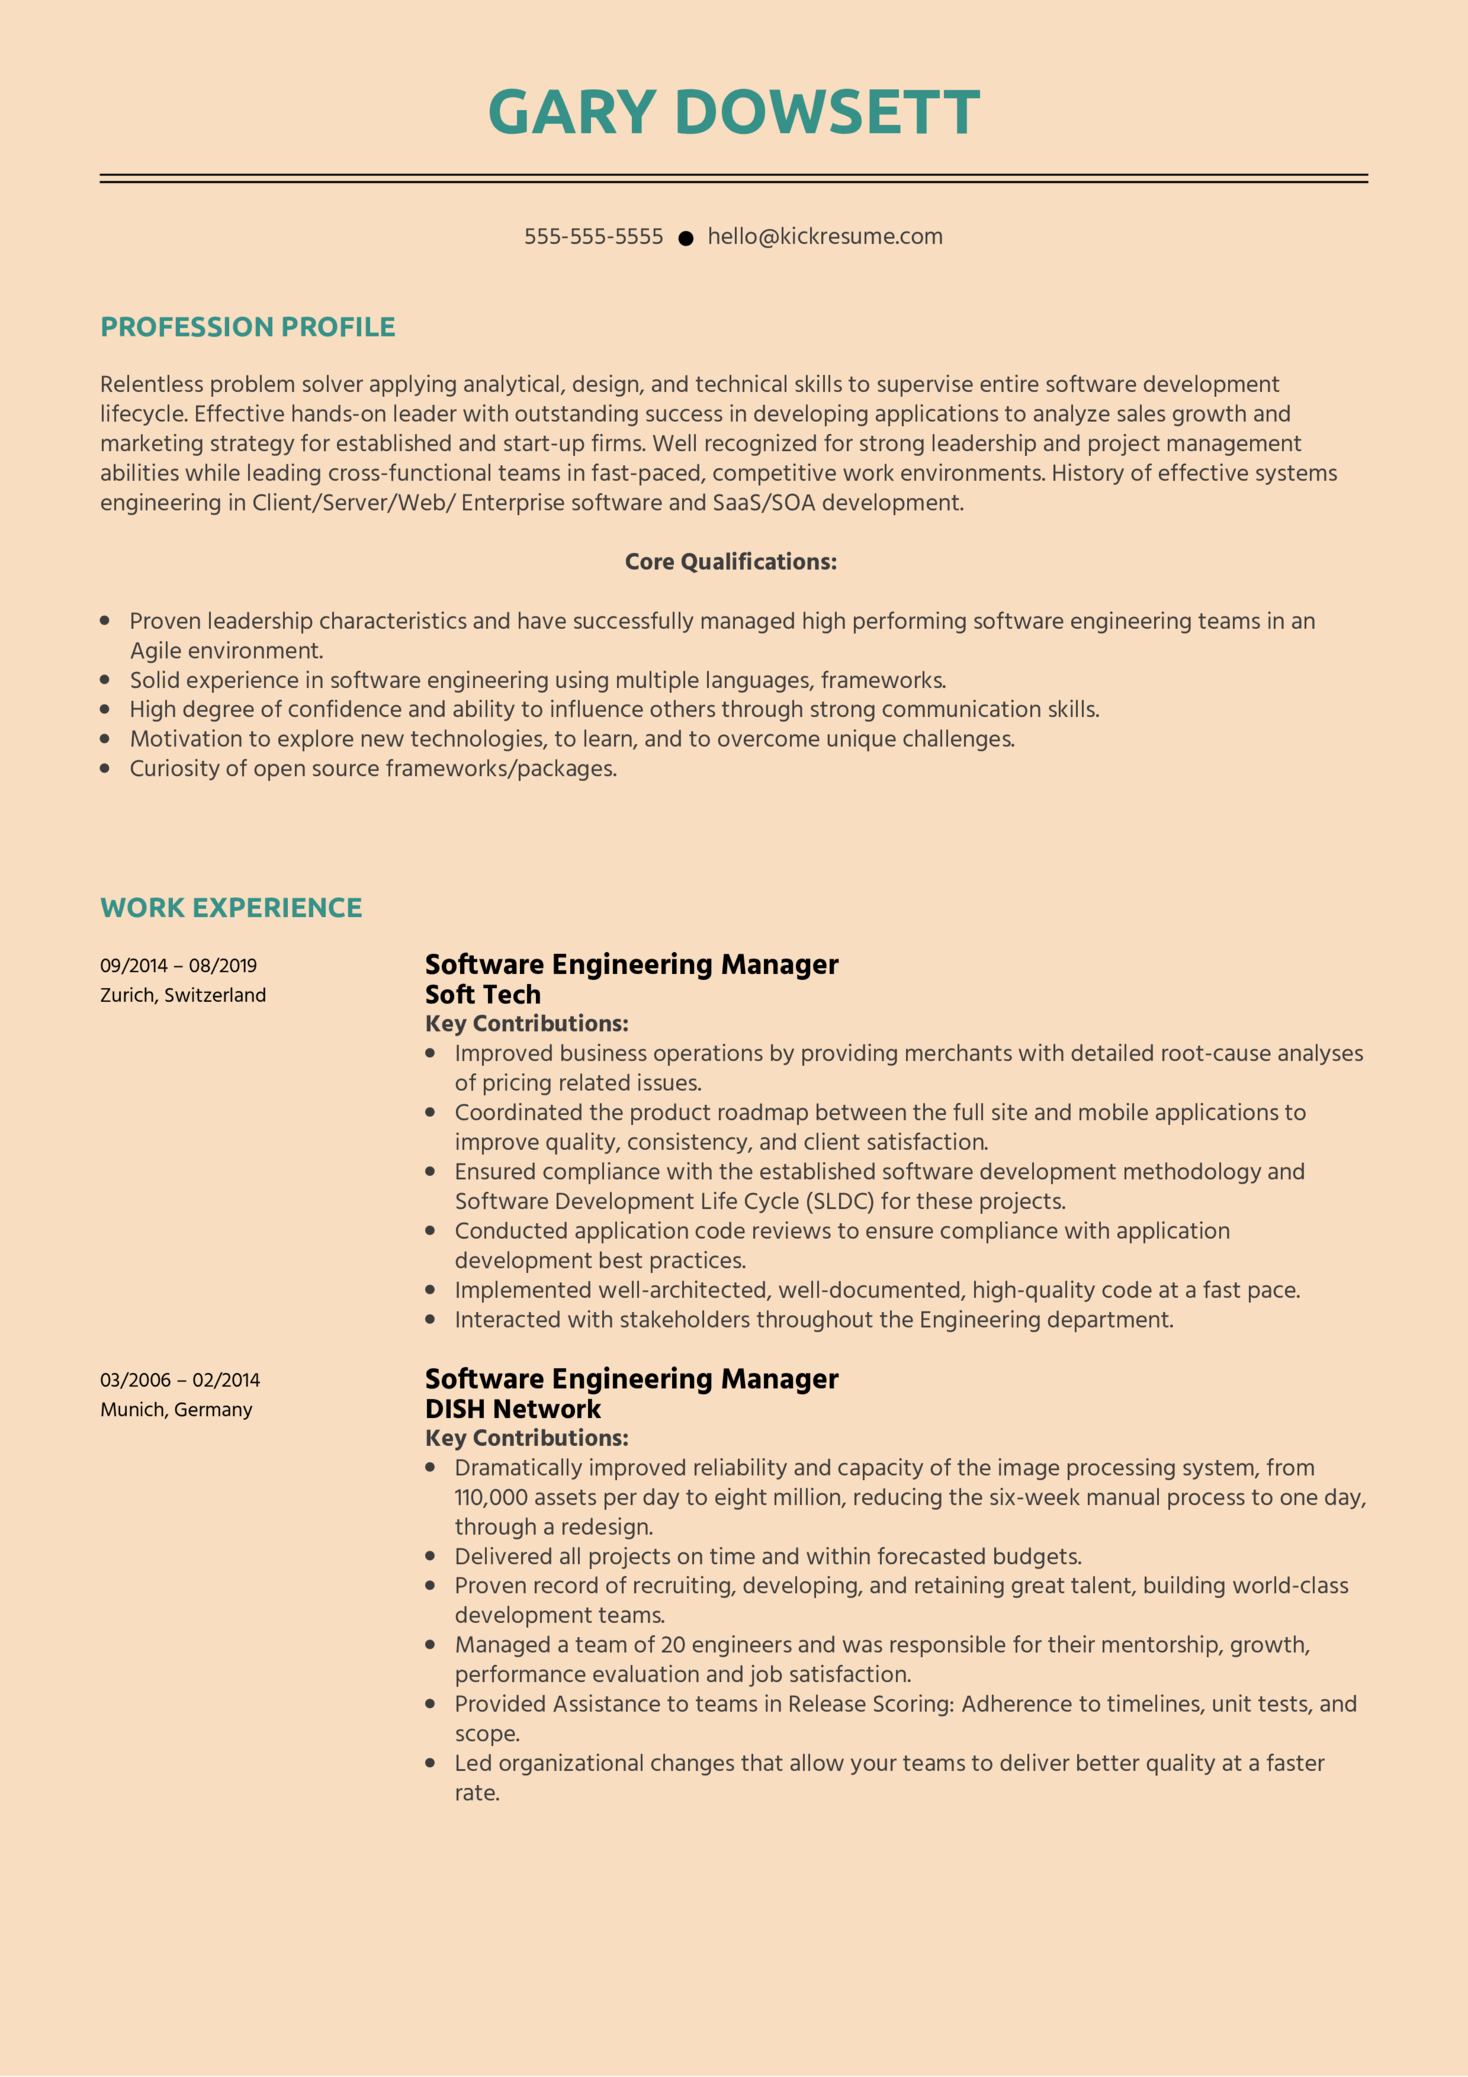 Software Engineering Manager Resume Sample (parte 1)